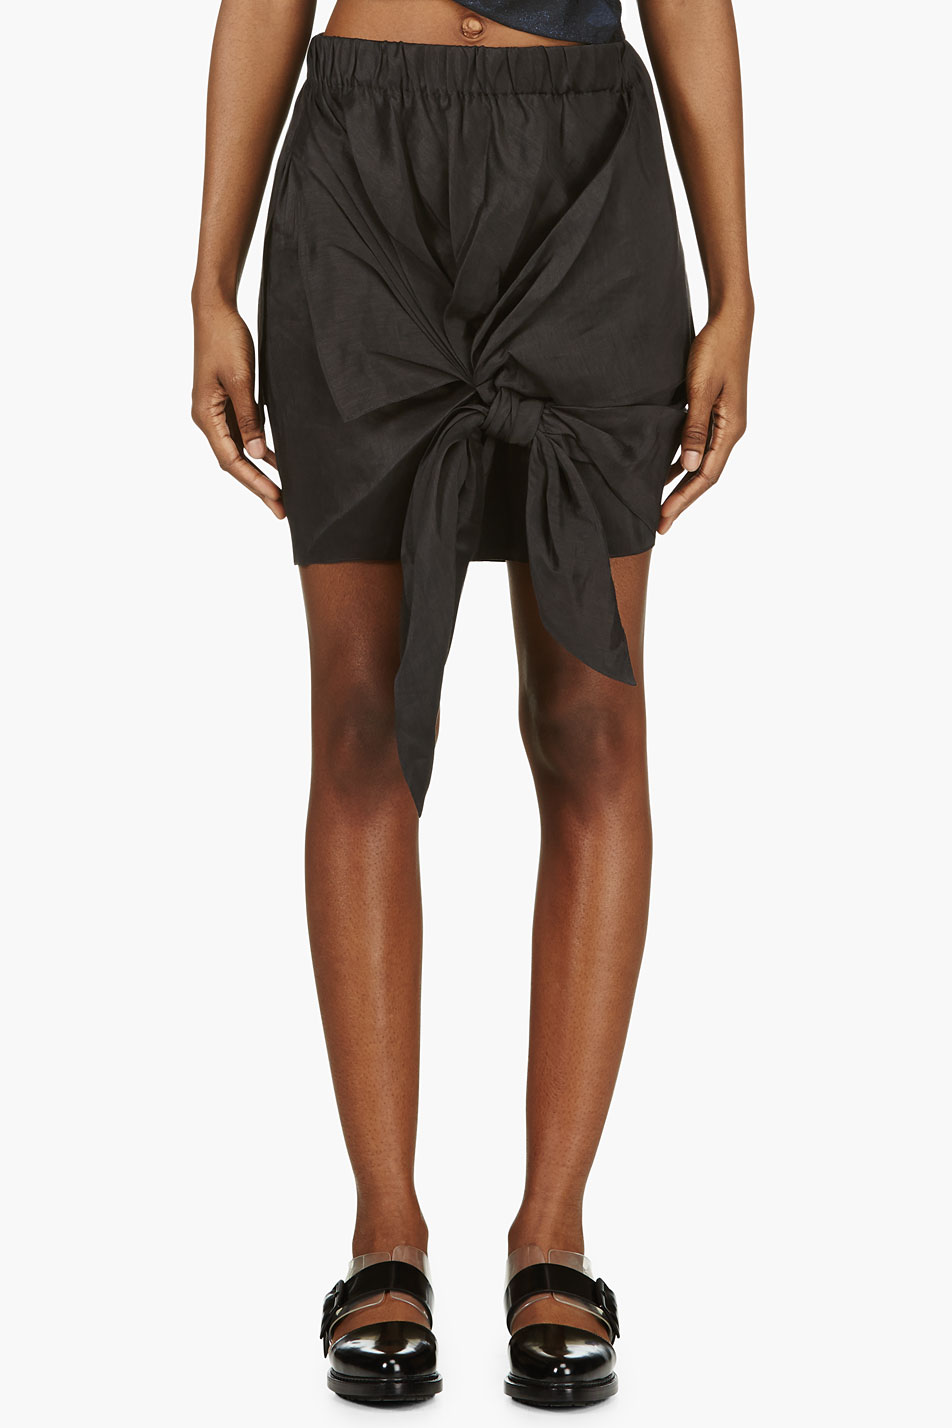 Acne Knotted Front Skirt